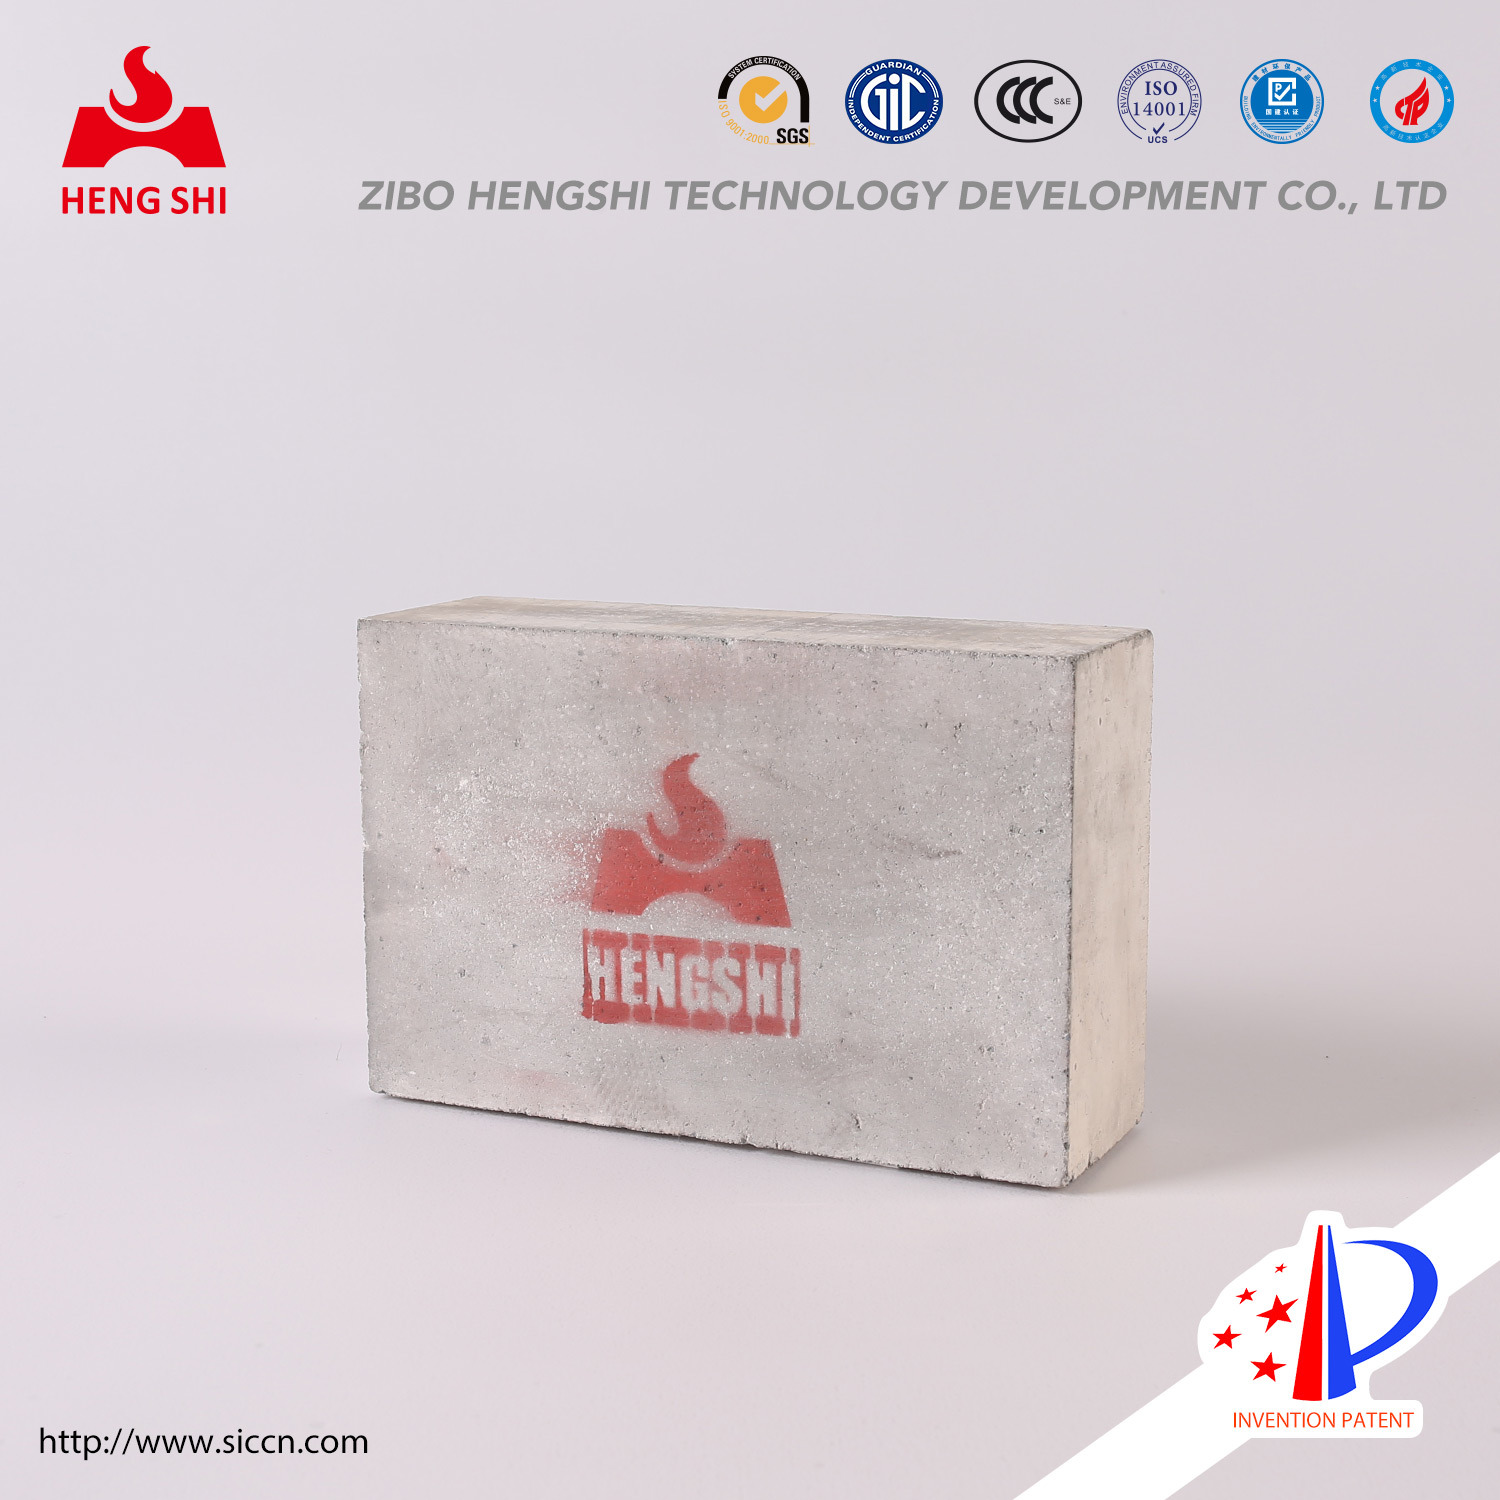 LG-5 Silicon Nitride Bonded Silicon Carbide Brick